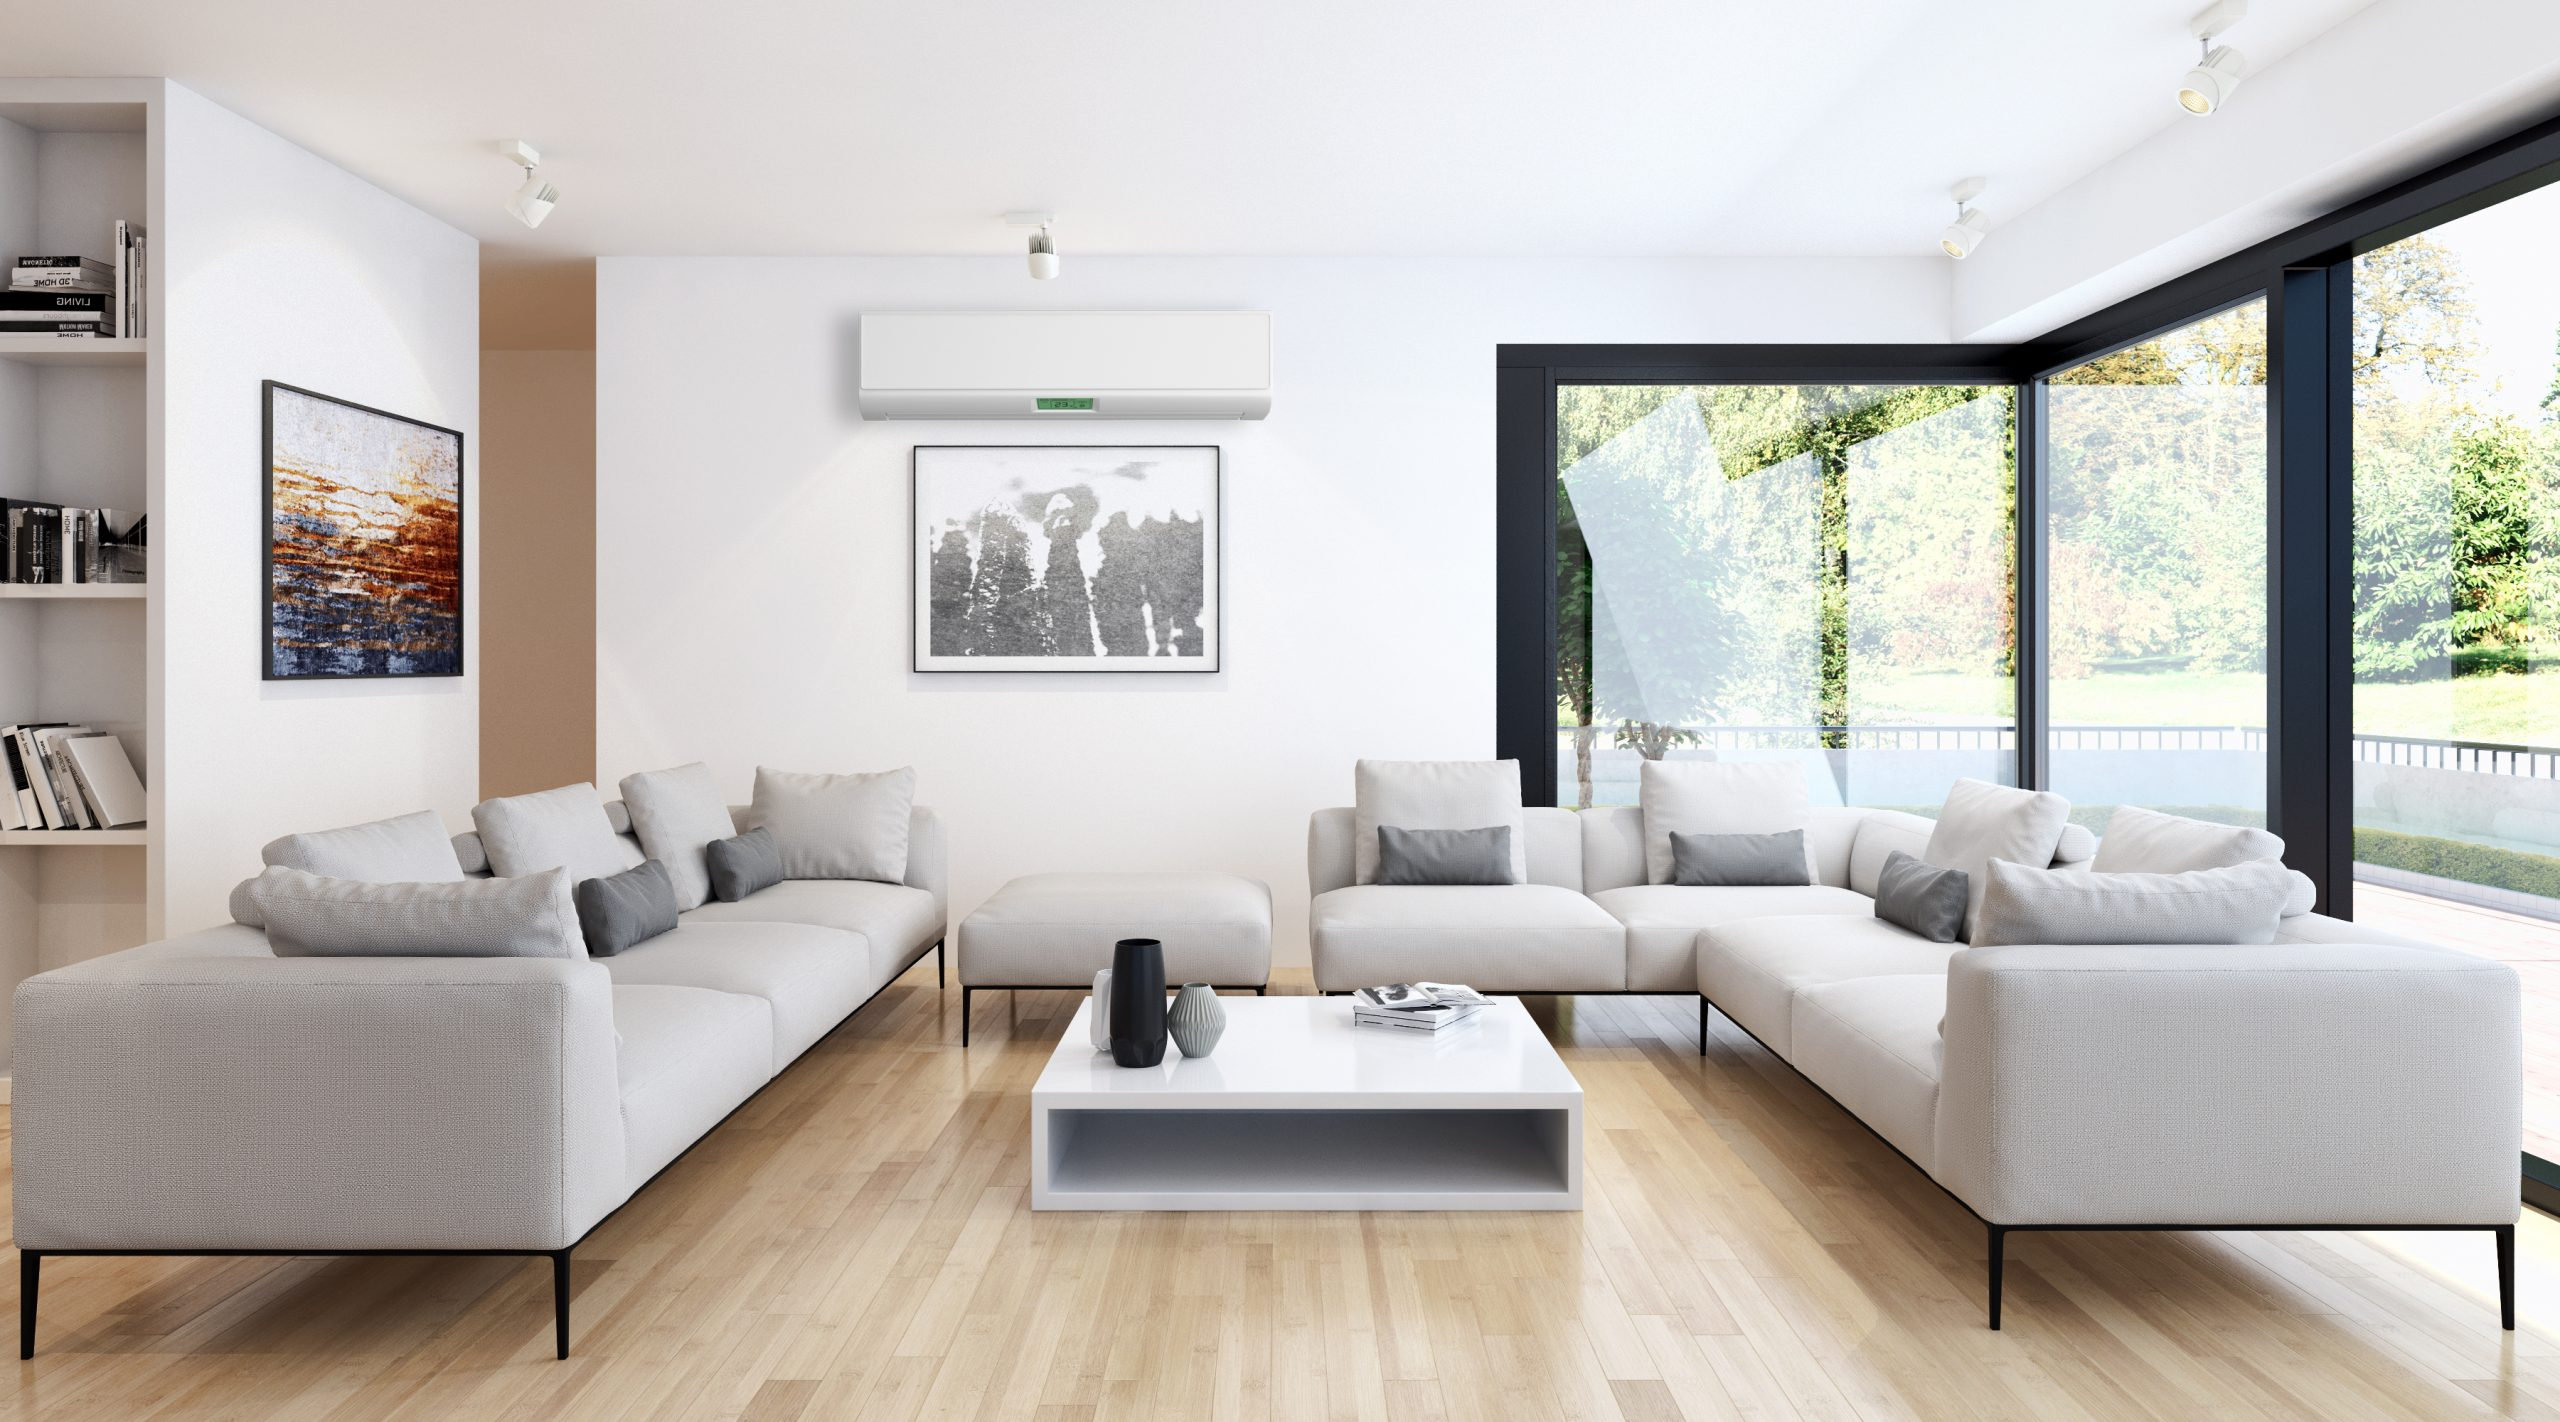 Modern,Bright,Living,Room,Lounge,Interior,With,Air,Conditioning.,3d